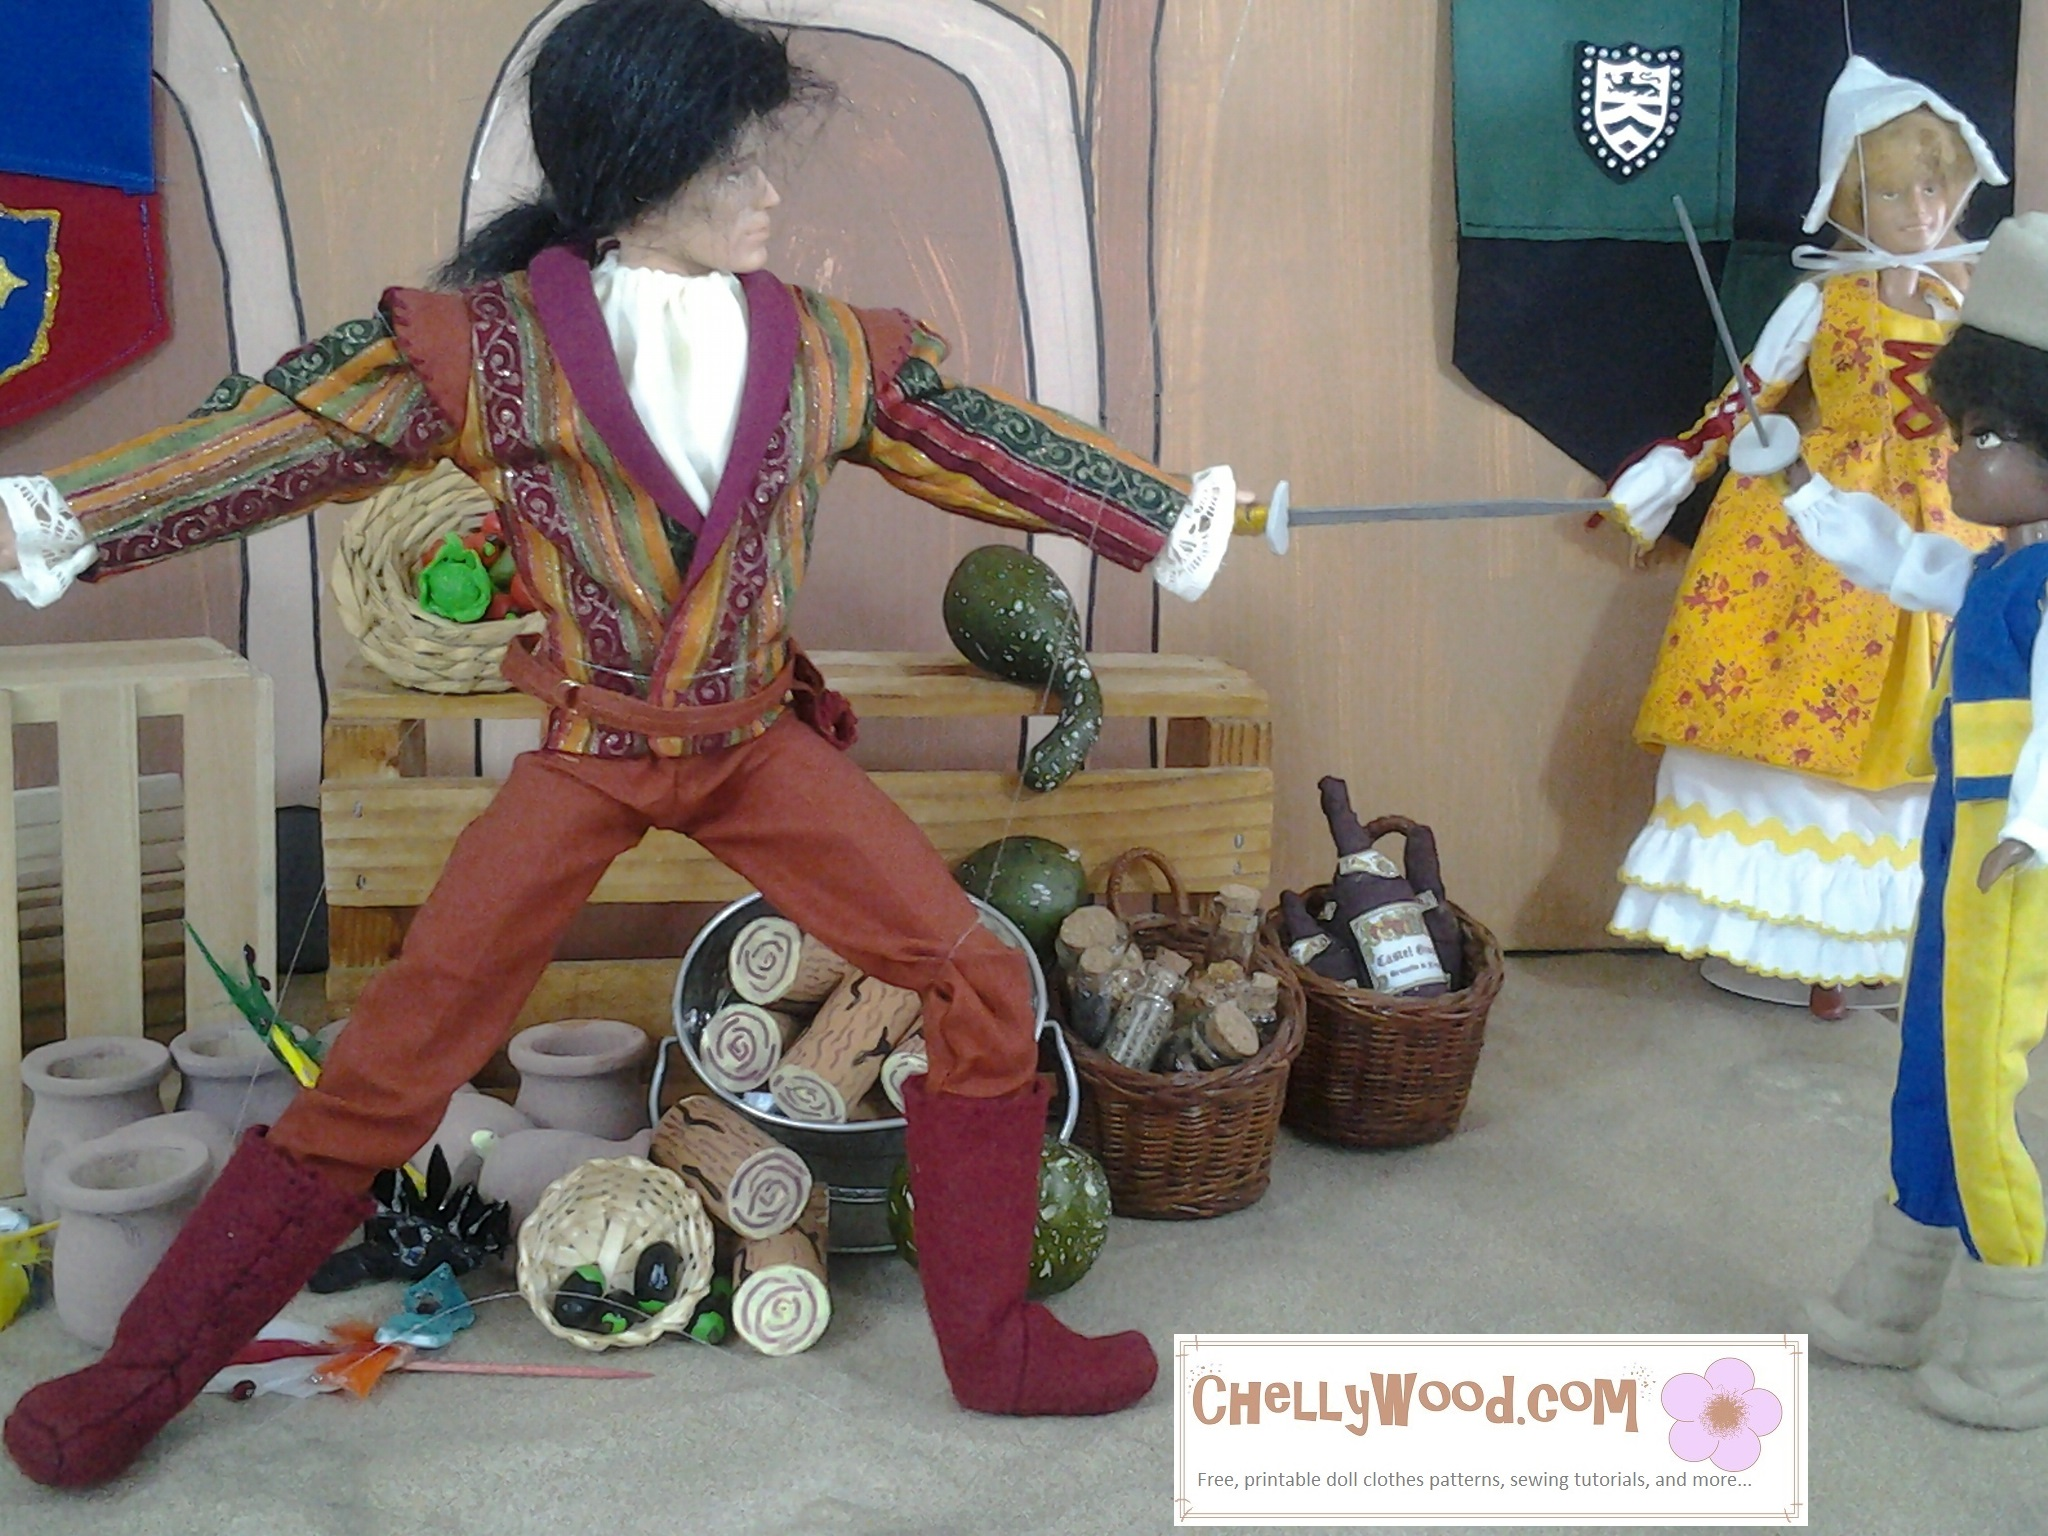 Image of Finnick Odair doll from Hunger Games wearing a wig and dressed as Tybalt for Chelly Wood's stop-motion video of Romeo and Juliet with 1:6 scale dolls. On the page, it offers free, printable sewing patterns for making the Tybalt costume to fit most Ken-sized dolls.